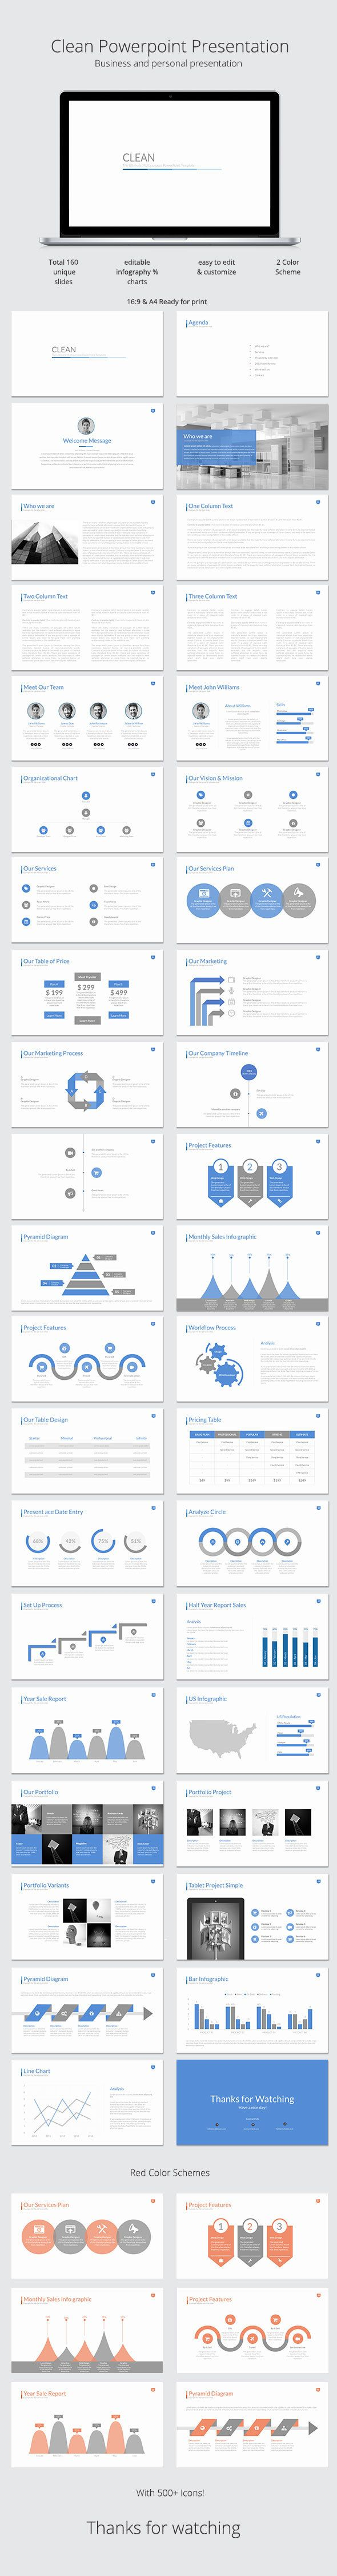 Coolmathgamesus  Scenic  Ideas About Powerpoint Presentations On Pinterest With Outstanding Clean Powerpoint Template With Alluring Hypertension Powerpoint Slides Also It Powerpoint Template In Addition Download Background Powerpoint  And Powerpoint On Sound As Well As Powerpoint With Animation Additionally Sda Powerpoint Lesson Study From Pinterestcom With Coolmathgamesus  Outstanding  Ideas About Powerpoint Presentations On Pinterest With Alluring Clean Powerpoint Template And Scenic Hypertension Powerpoint Slides Also It Powerpoint Template In Addition Download Background Powerpoint  From Pinterestcom